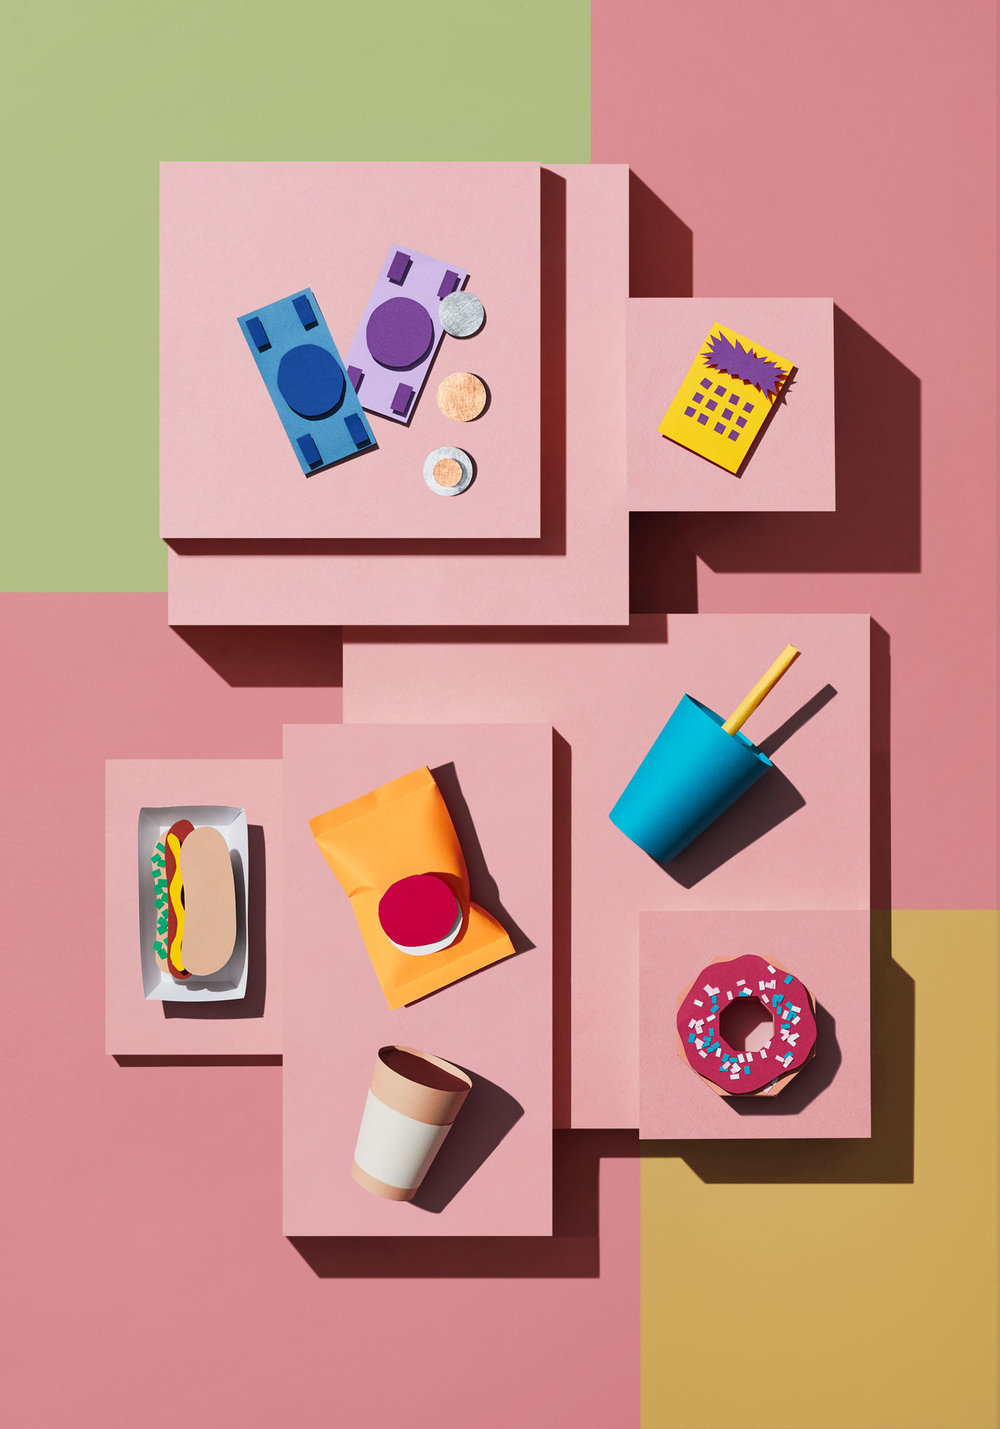 miss-cloudy-paper-art-props-still-life-globe-and-mail-nik-mirus-eloi-edito-report-on-business